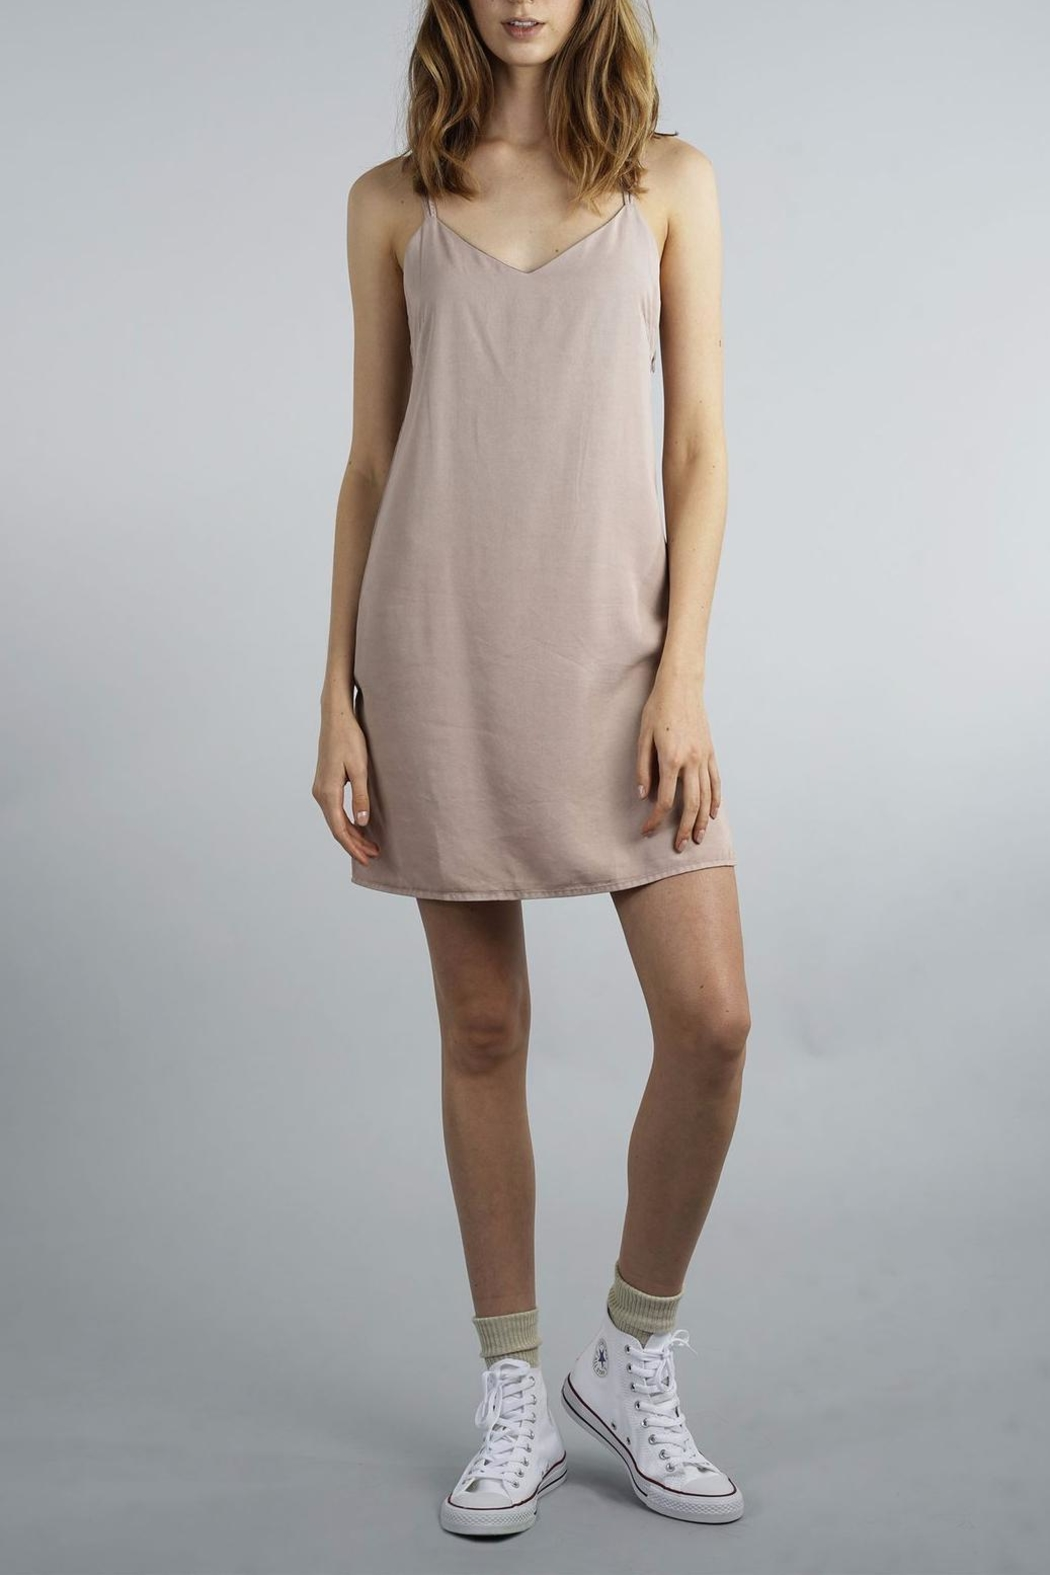 Thread & Supply Smoke Rose Dress - Front Cropped Image